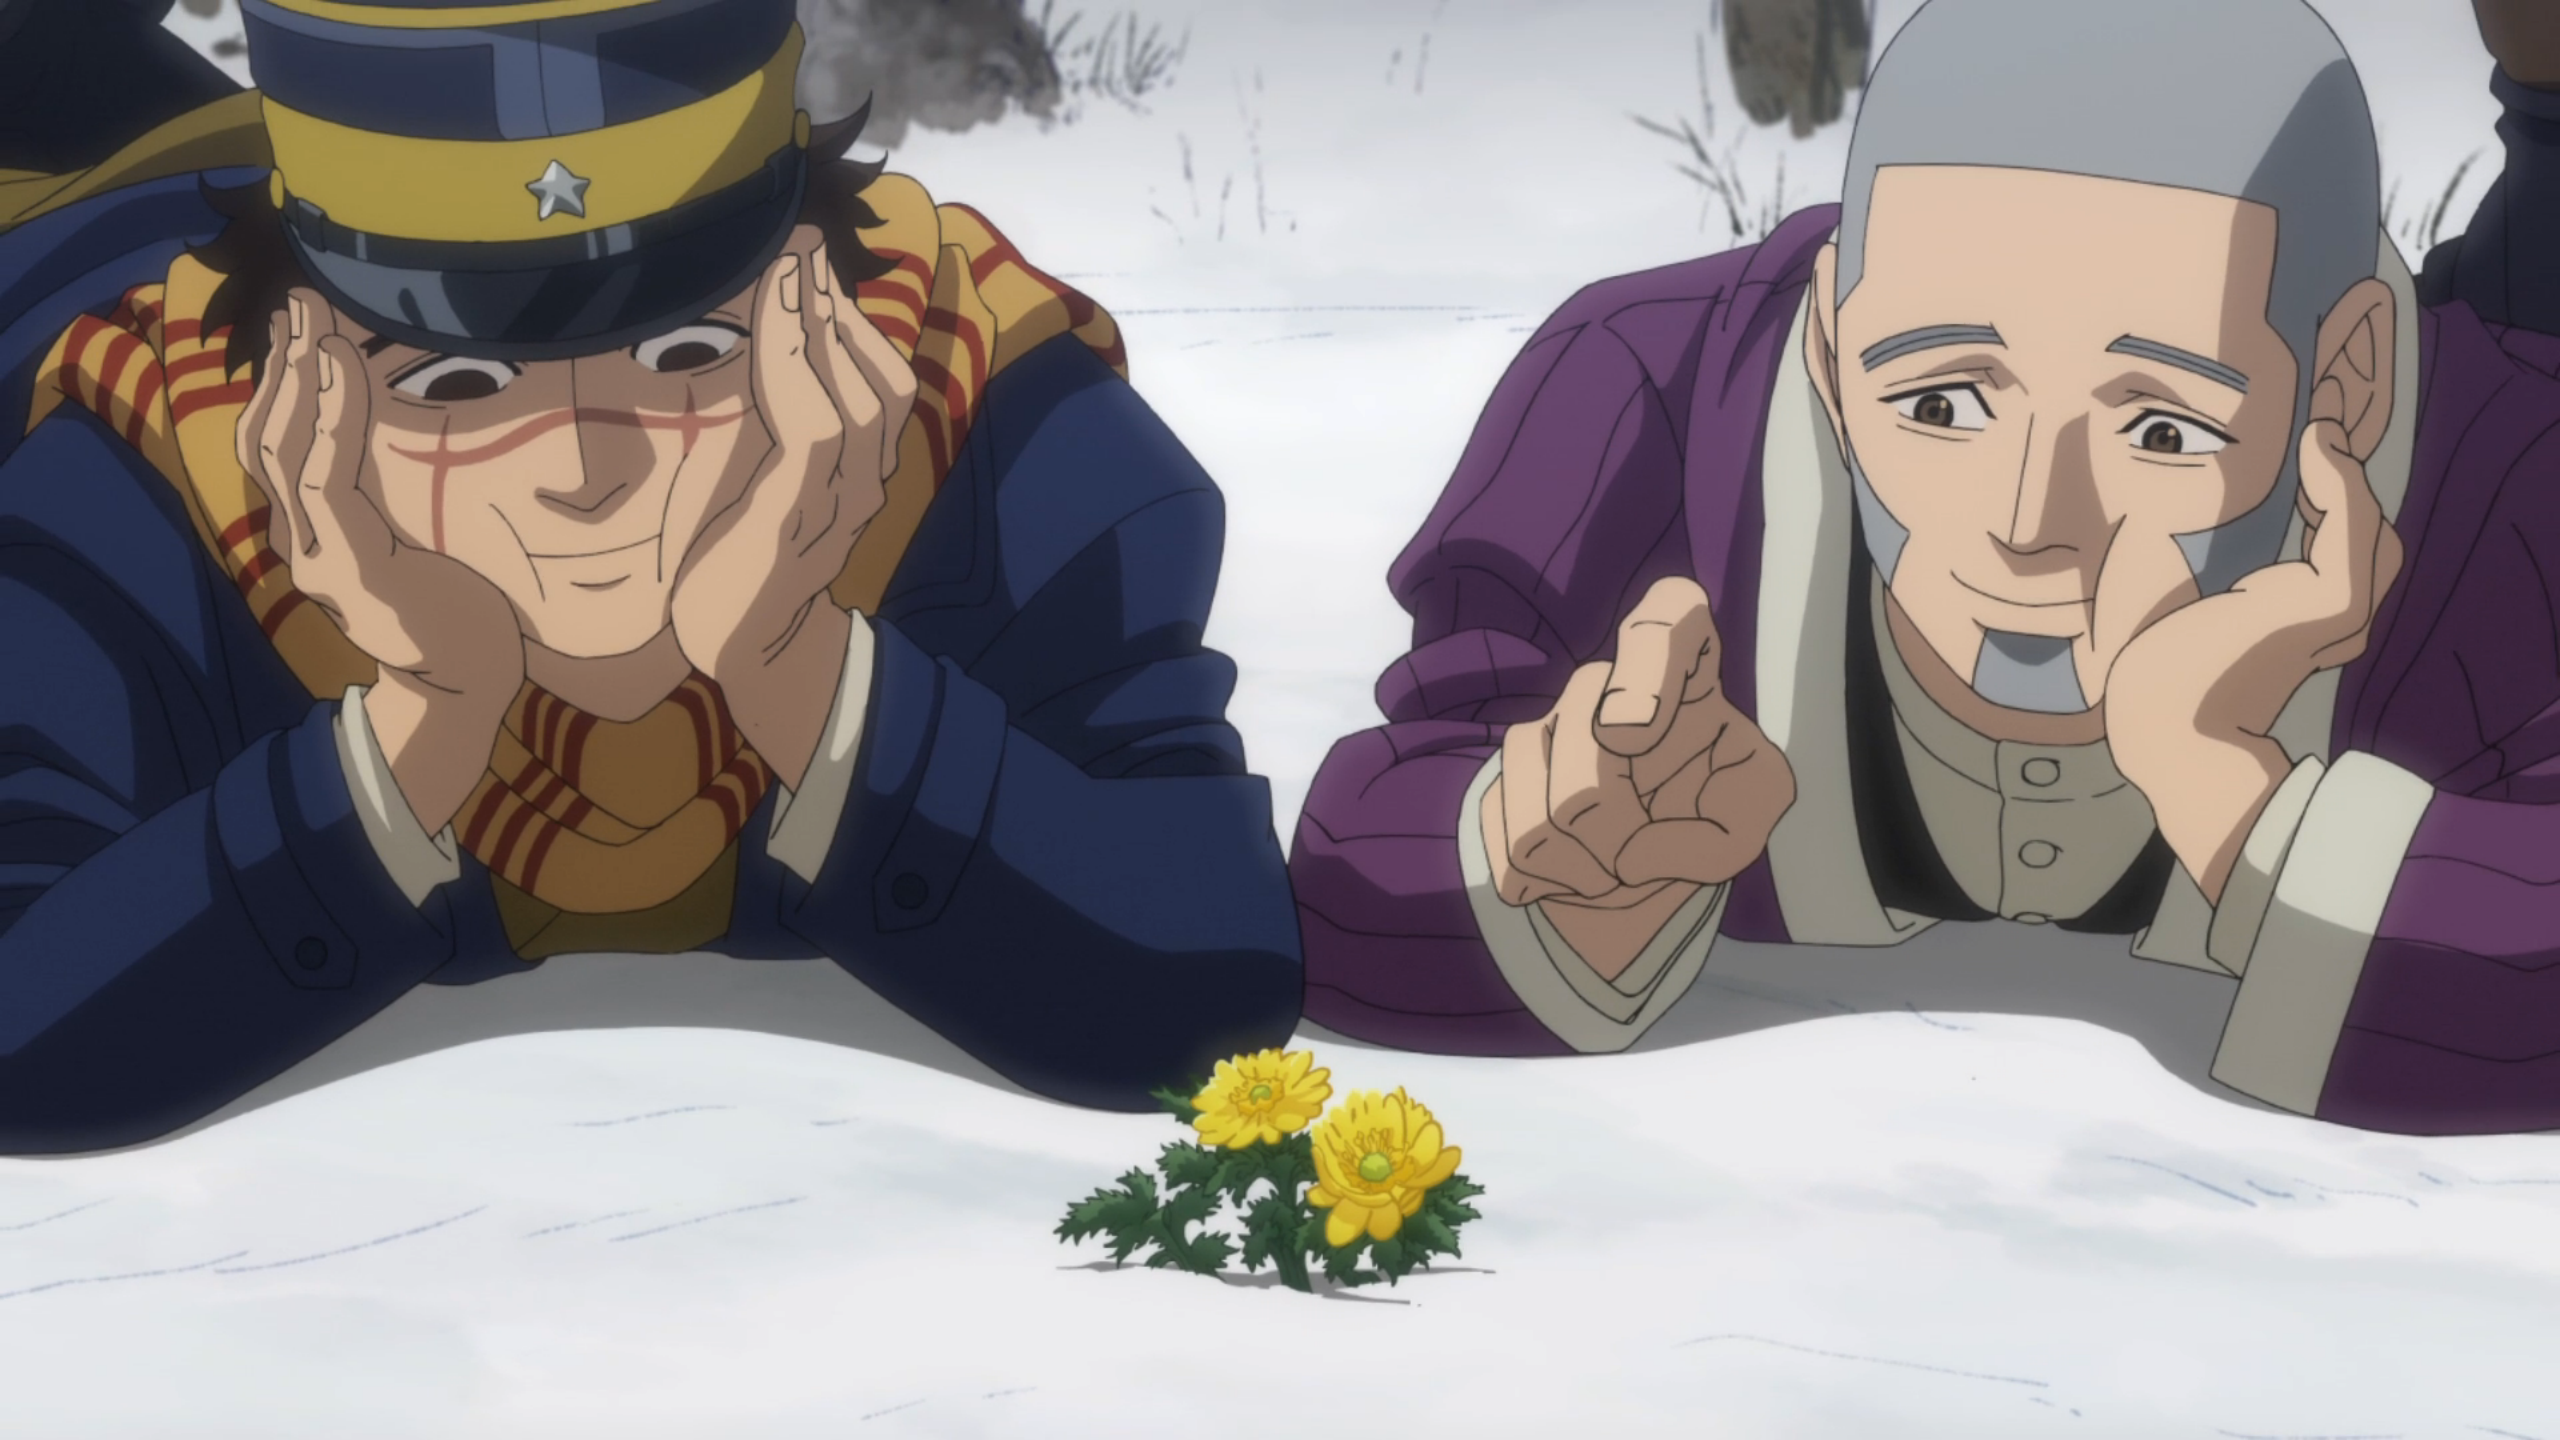 Two men, Sugimoto and Shiraishi, lay on their stomachs in the snow, admiring a tiny blooming yellow flower. Their cheeks are squished cutely between their hands and they're smiling.